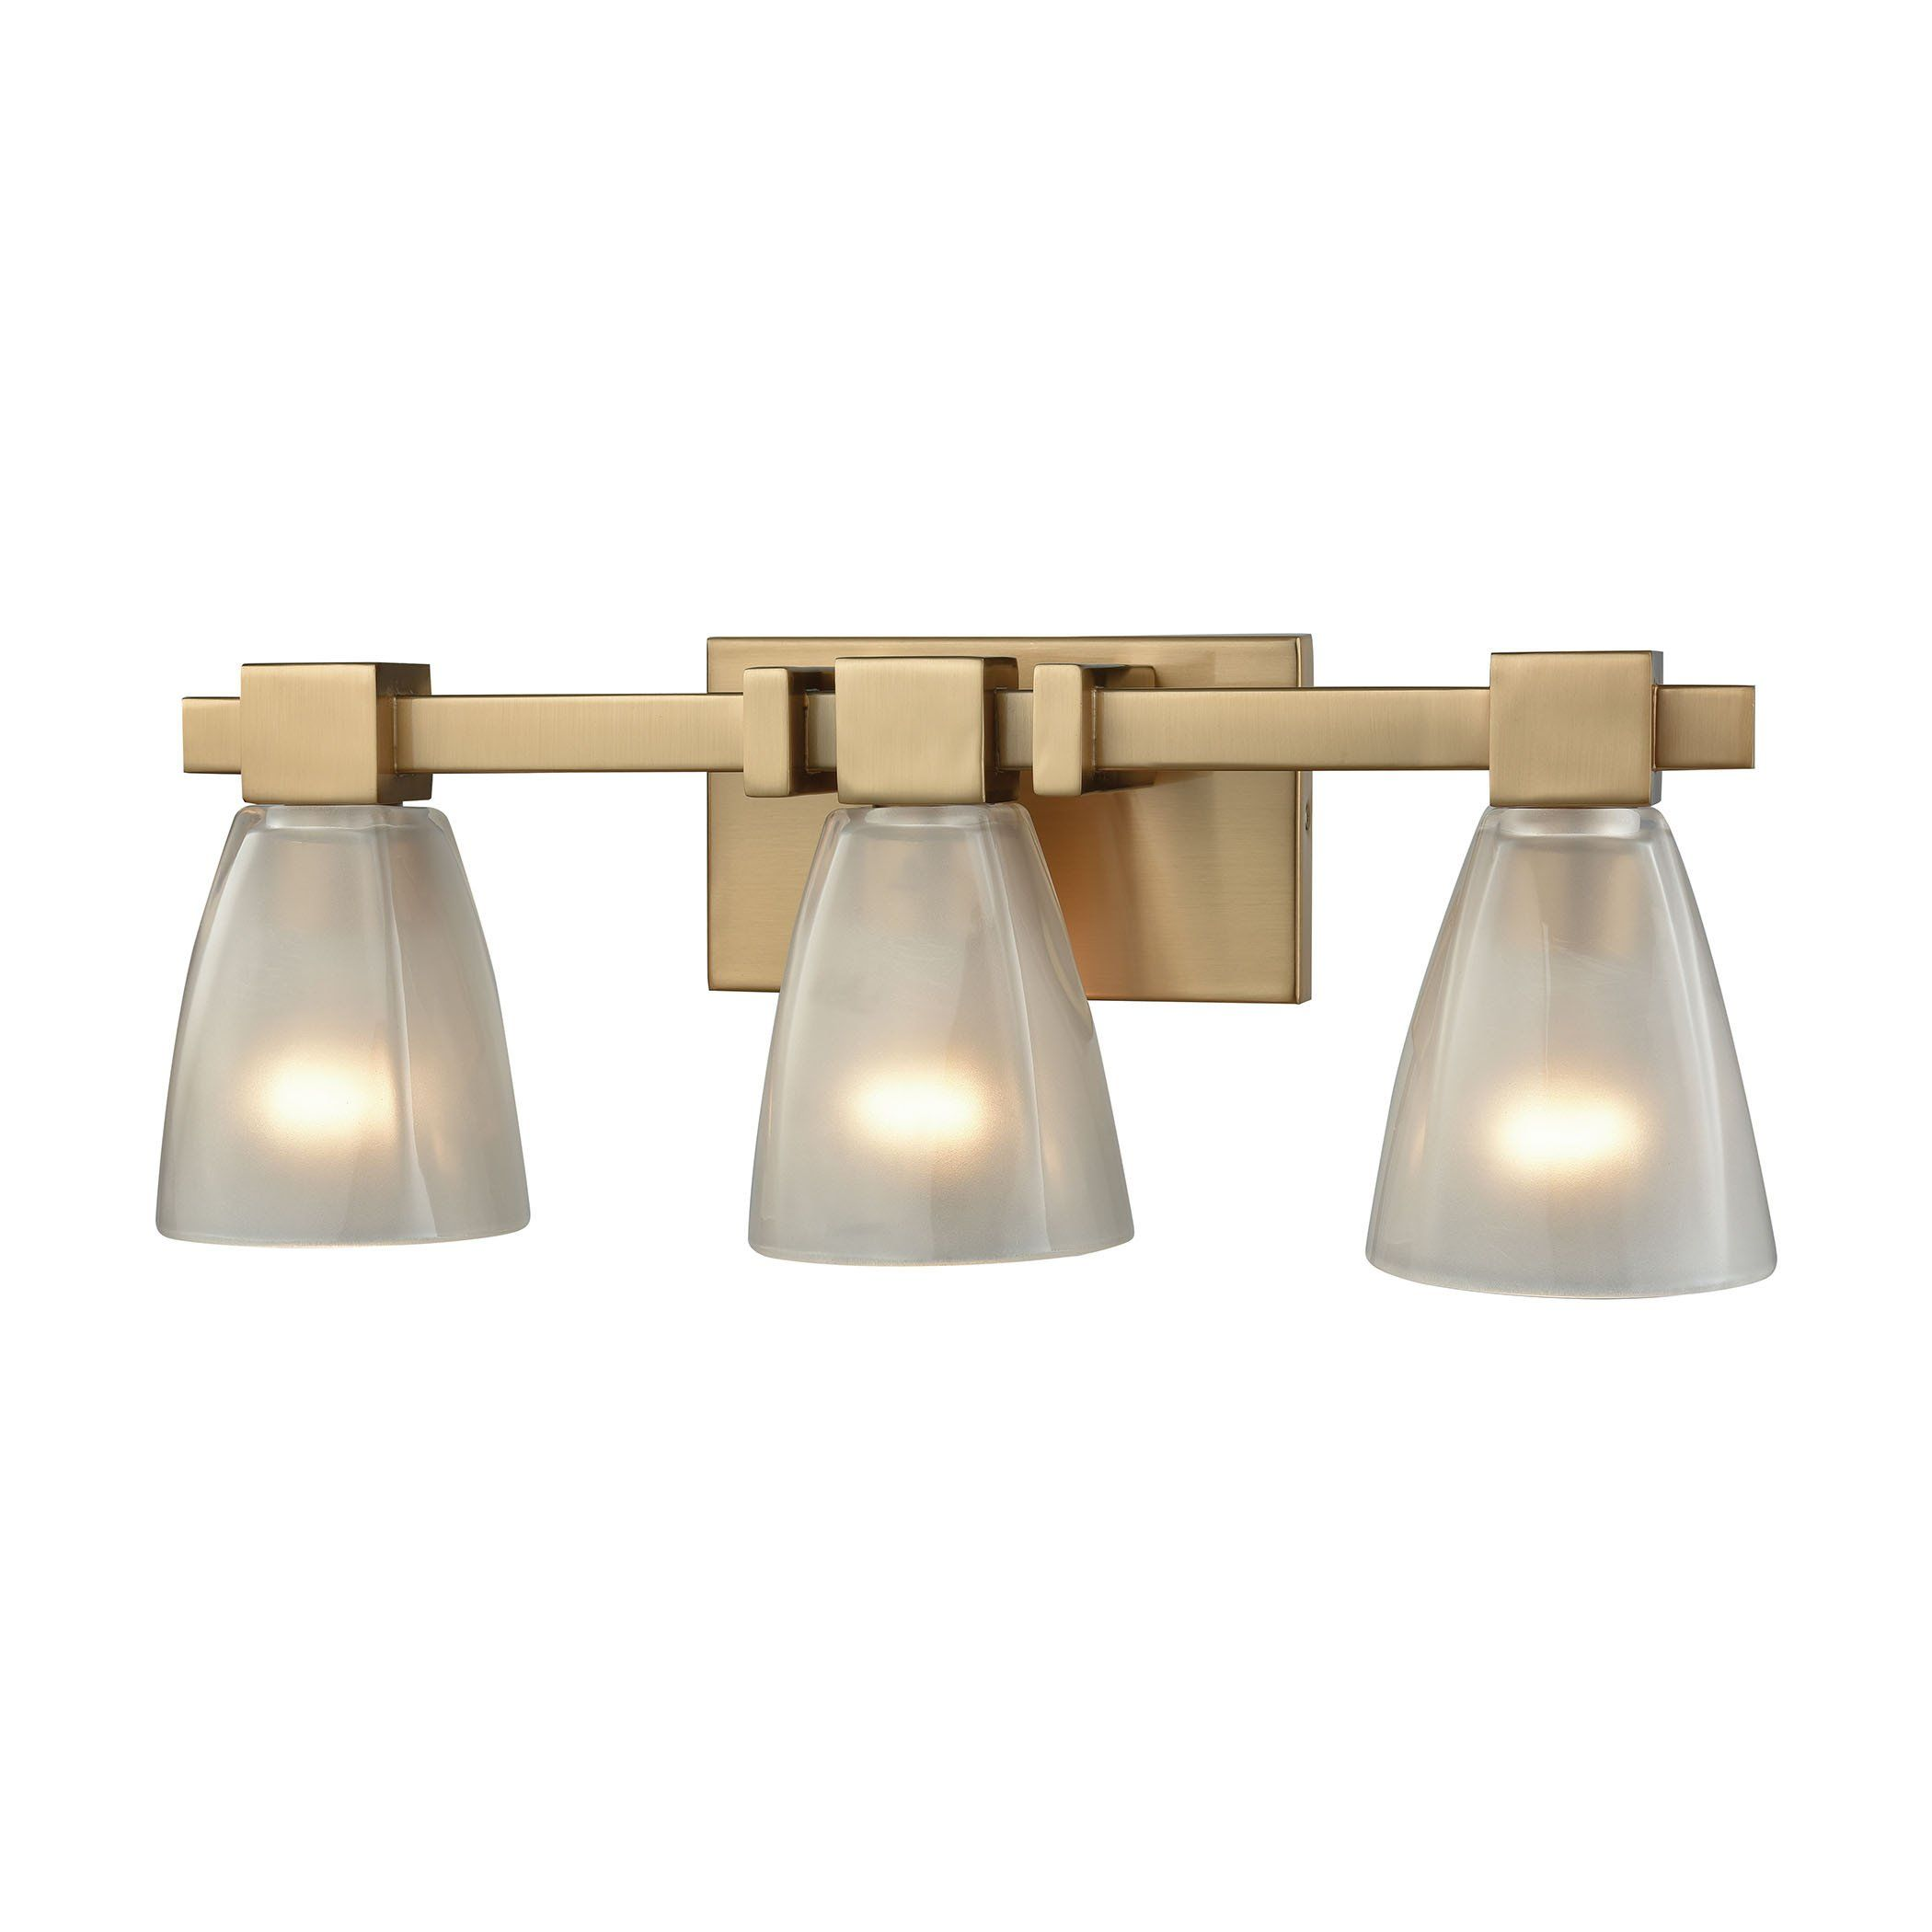 Off Ensley Satin Brass Three Light Vanity By Elk Lighting 3 In With Frosted Glass Bulb S Not Included Square To